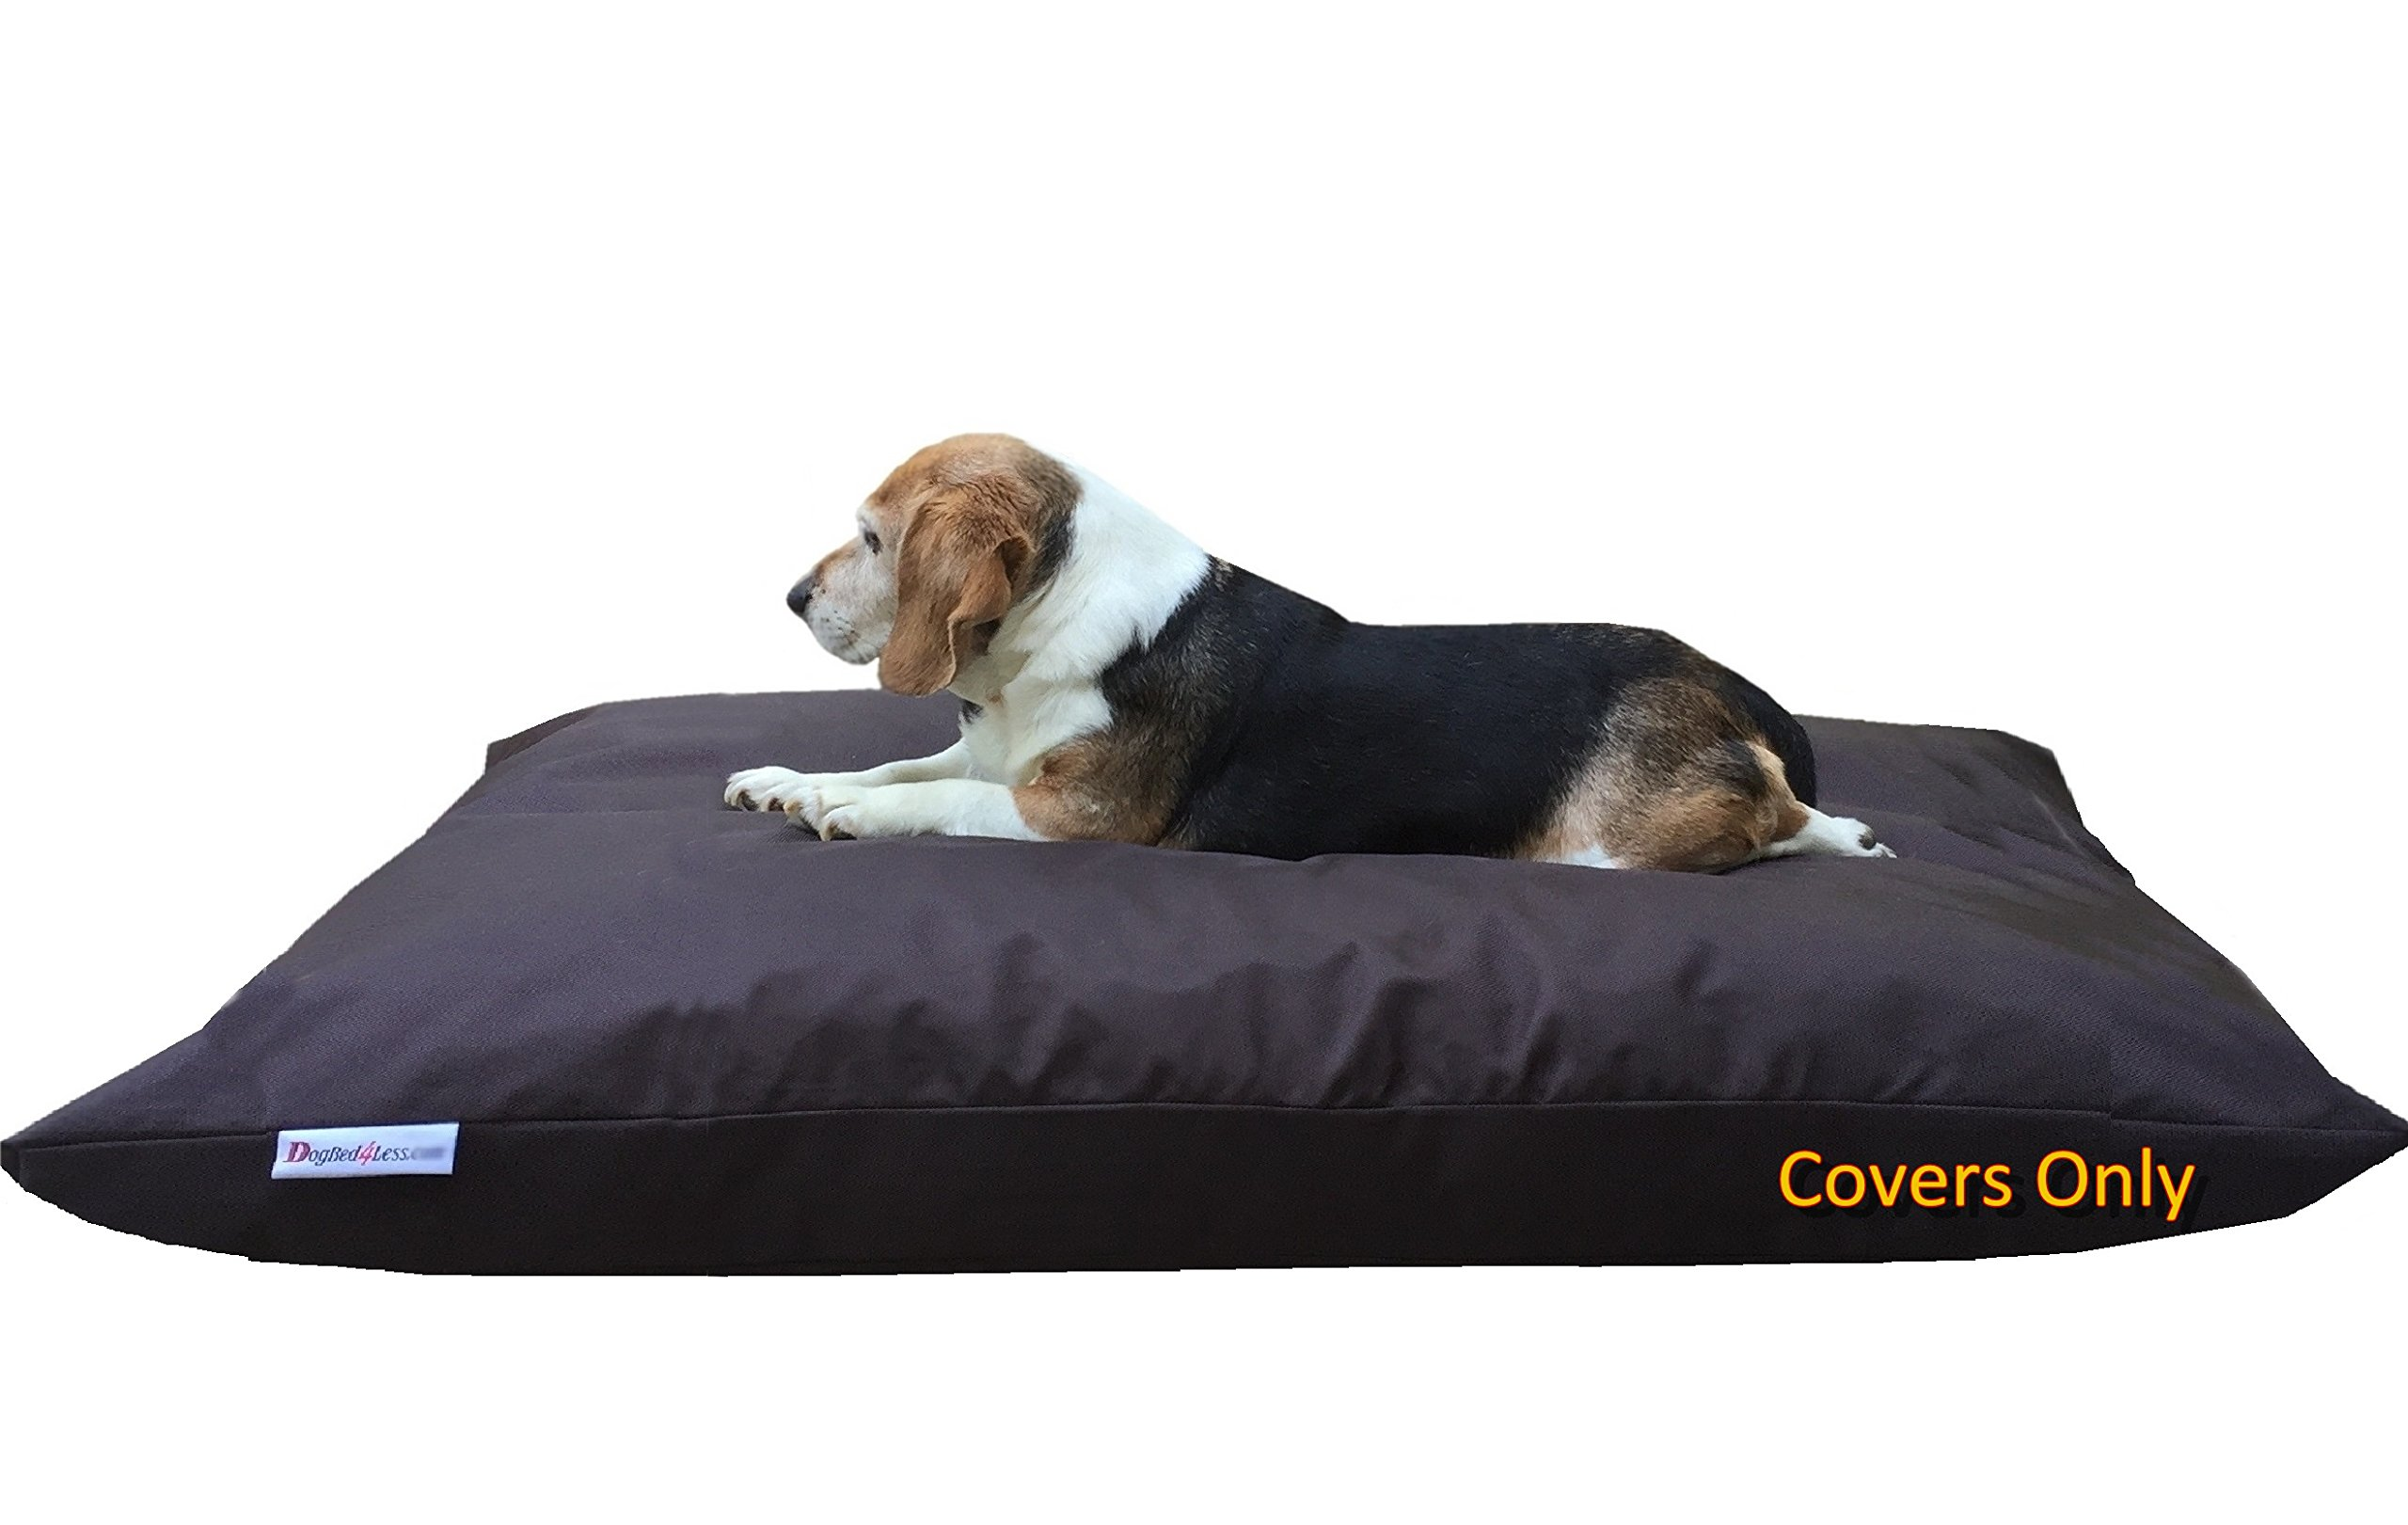 Dogbed4less Do It Yourself DIY Pet Bed Pillow Duvet 1680 Nylon Durable Cover and Waterproof Internal case for Dog/Cat at Large 48''X29'' Seal Brown Color - Covers only